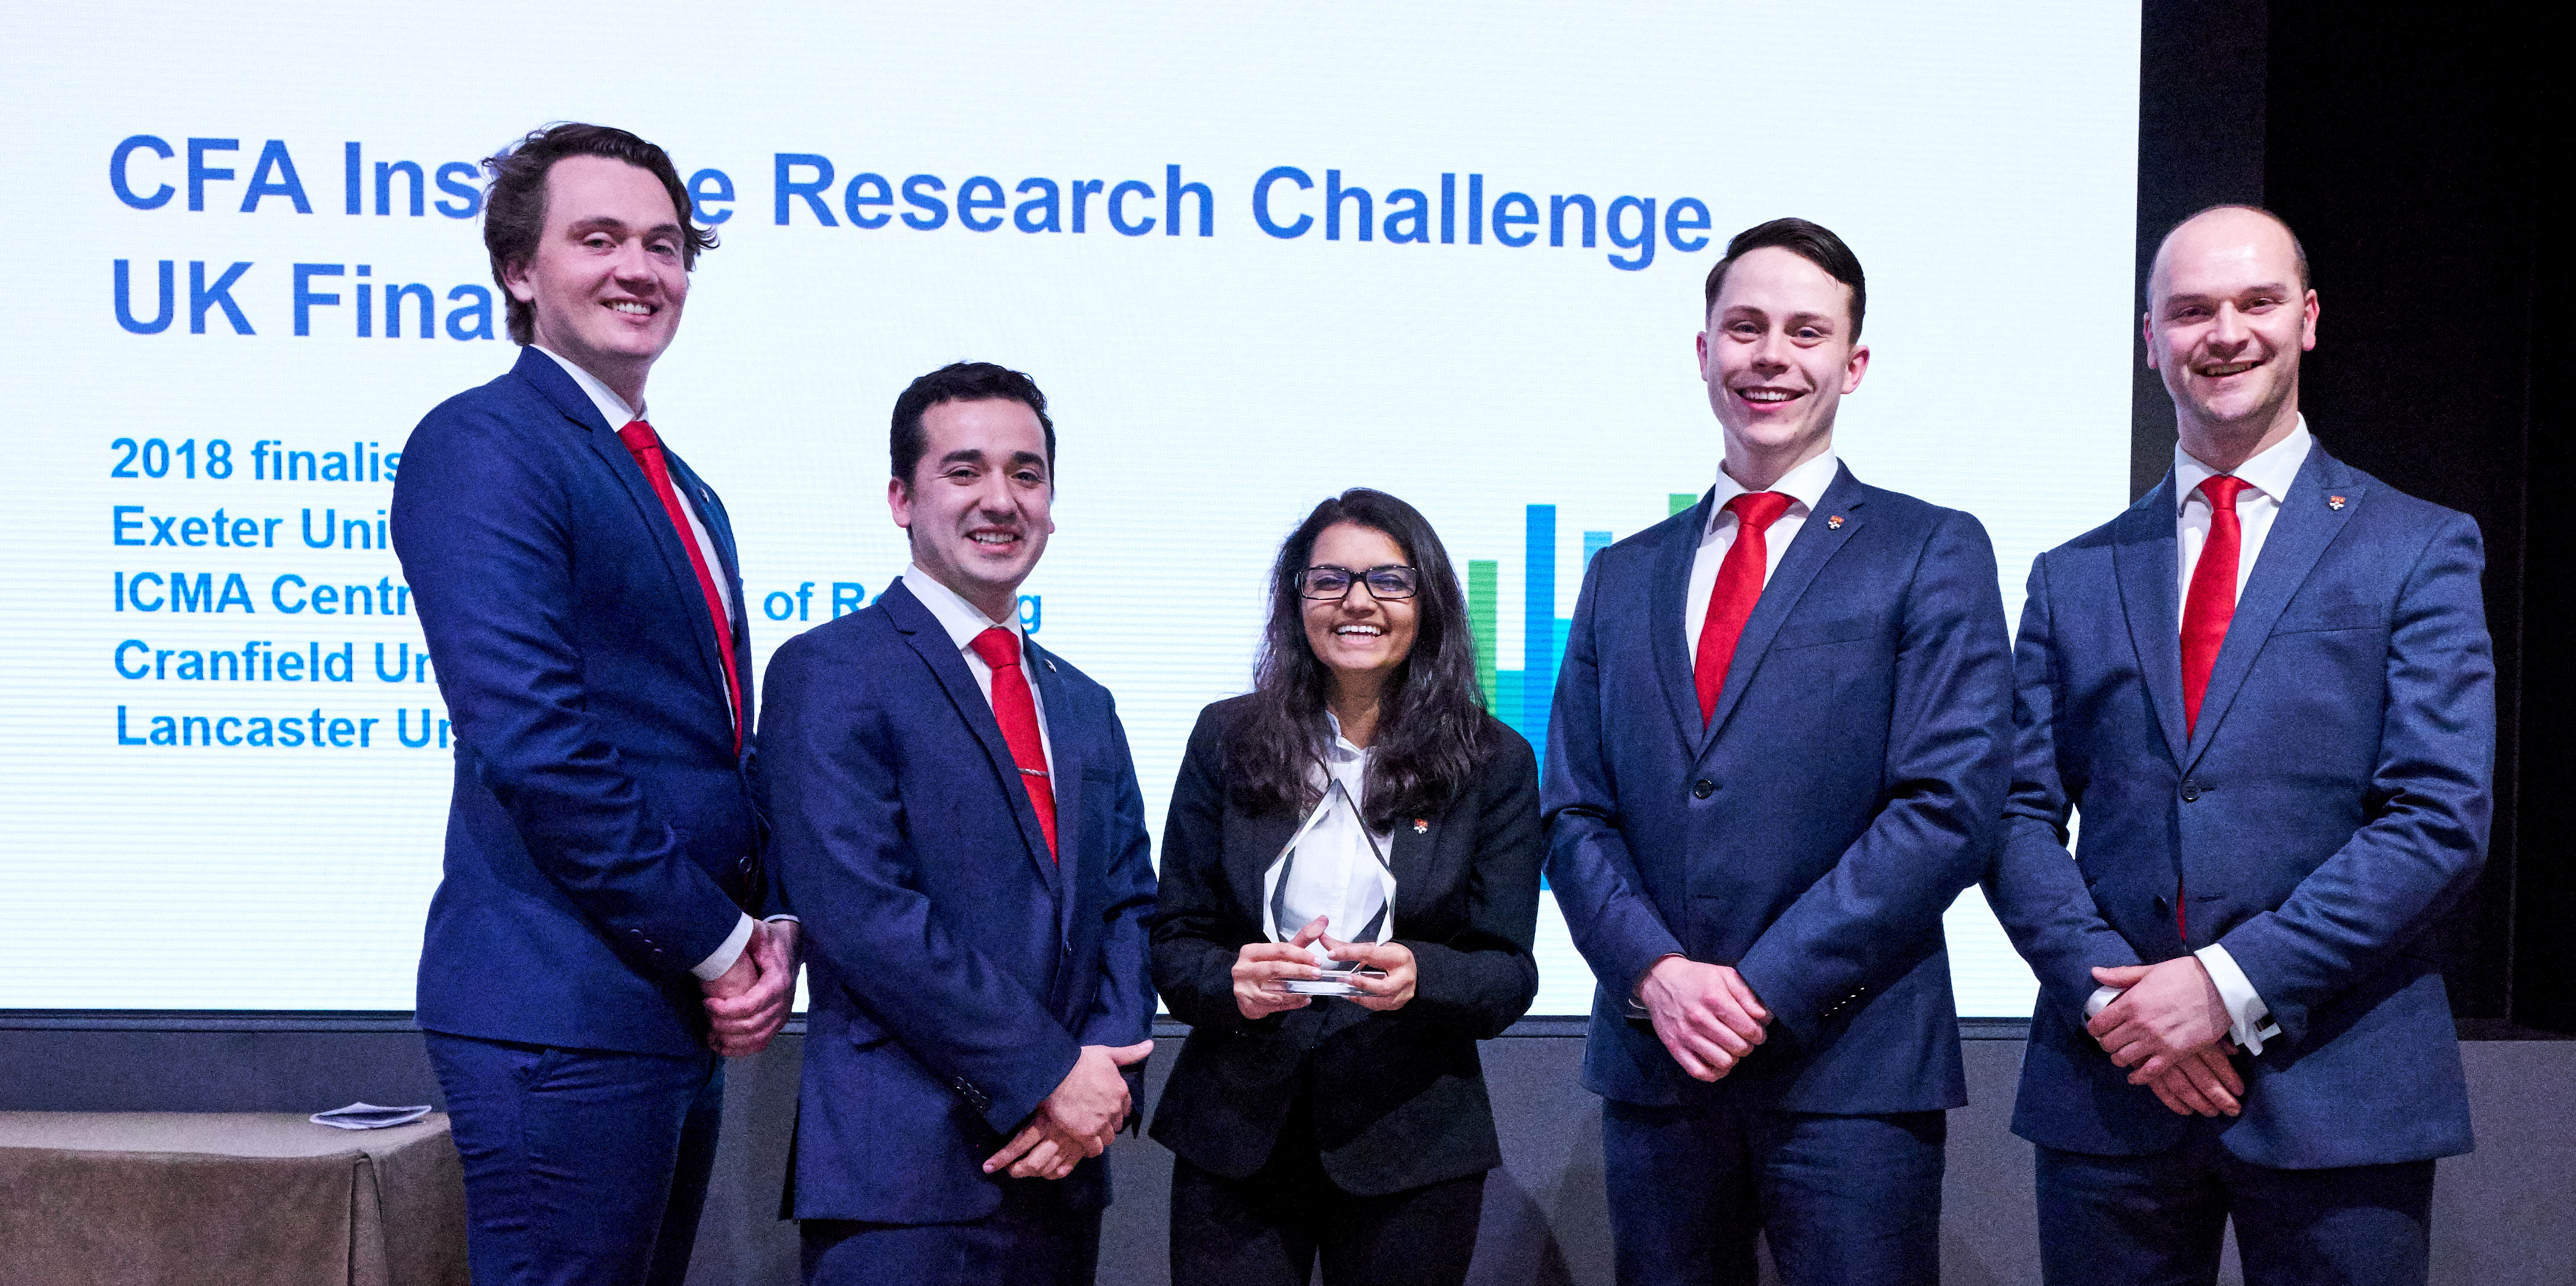 University of Reading Research Challenge winners